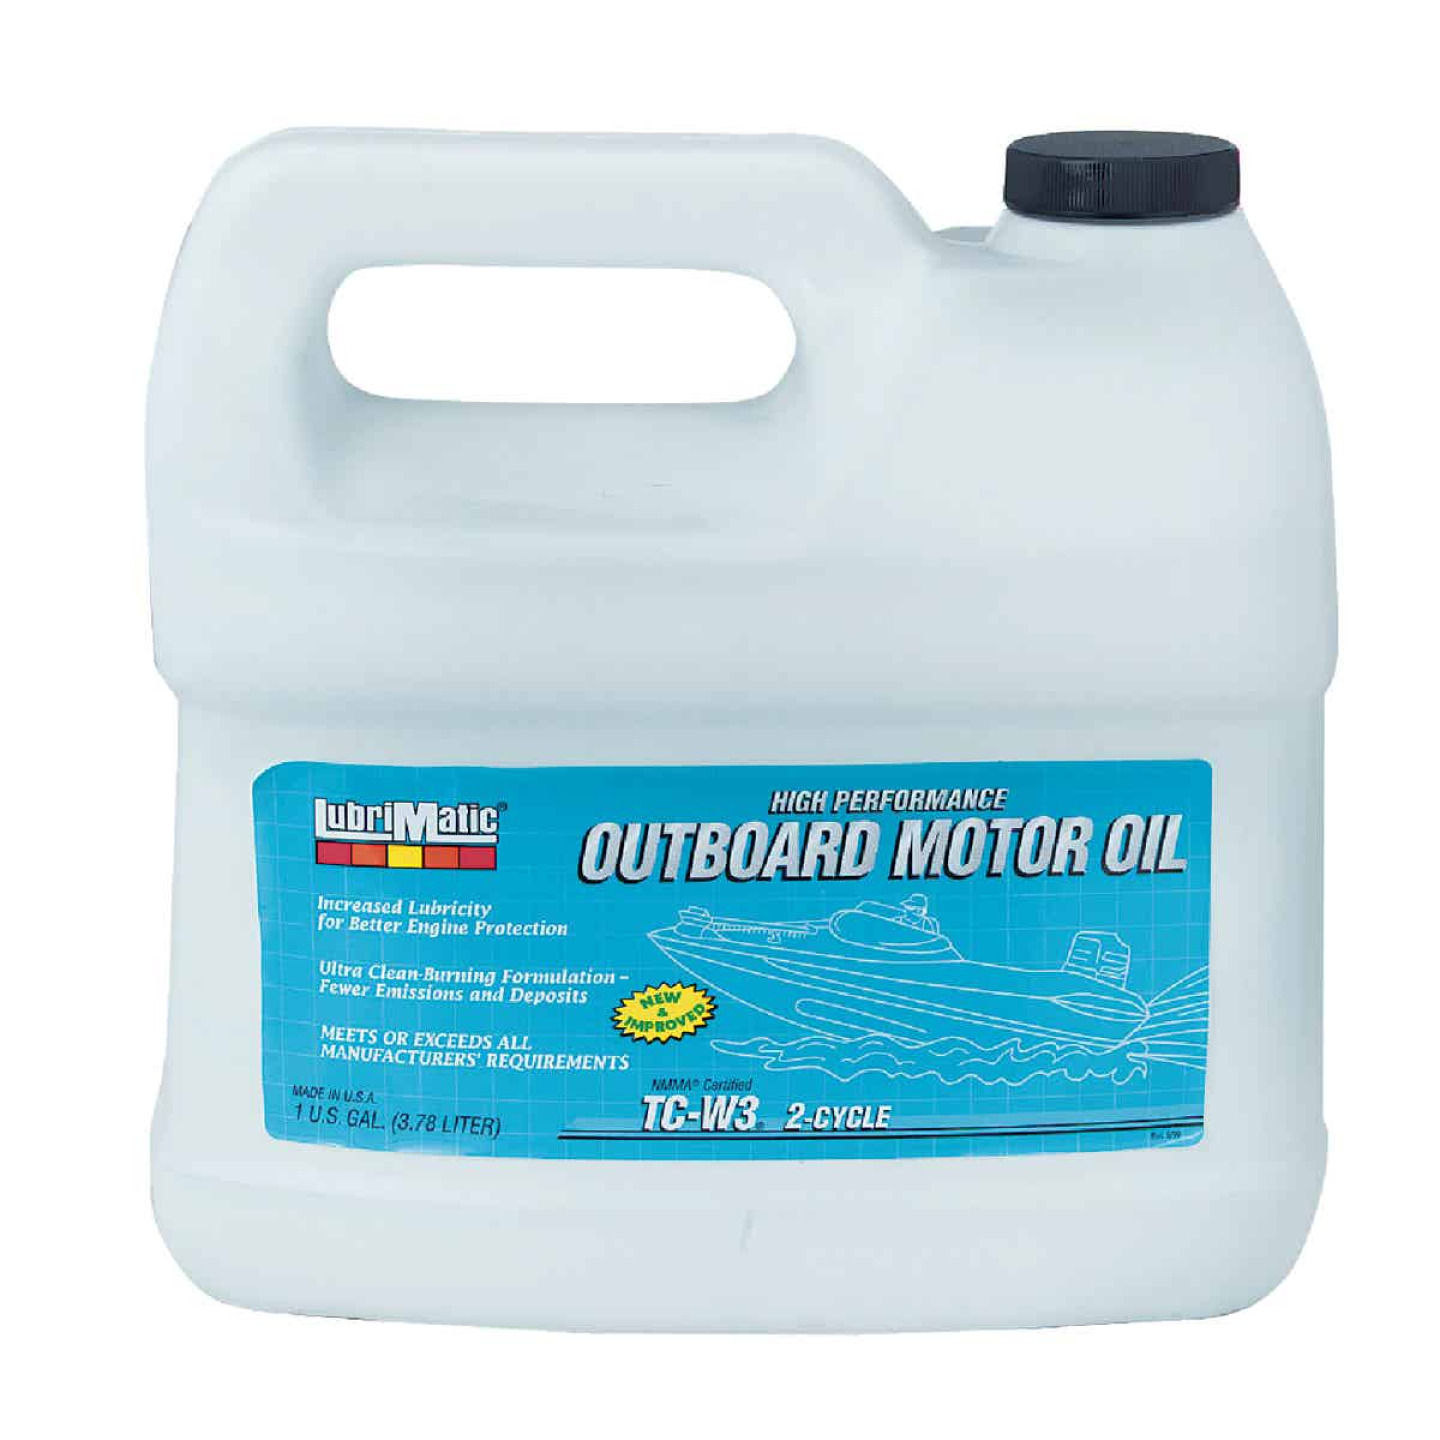 LubriMatic 1 Gal. Outboard 2-Cycle Motor Oil Image 1